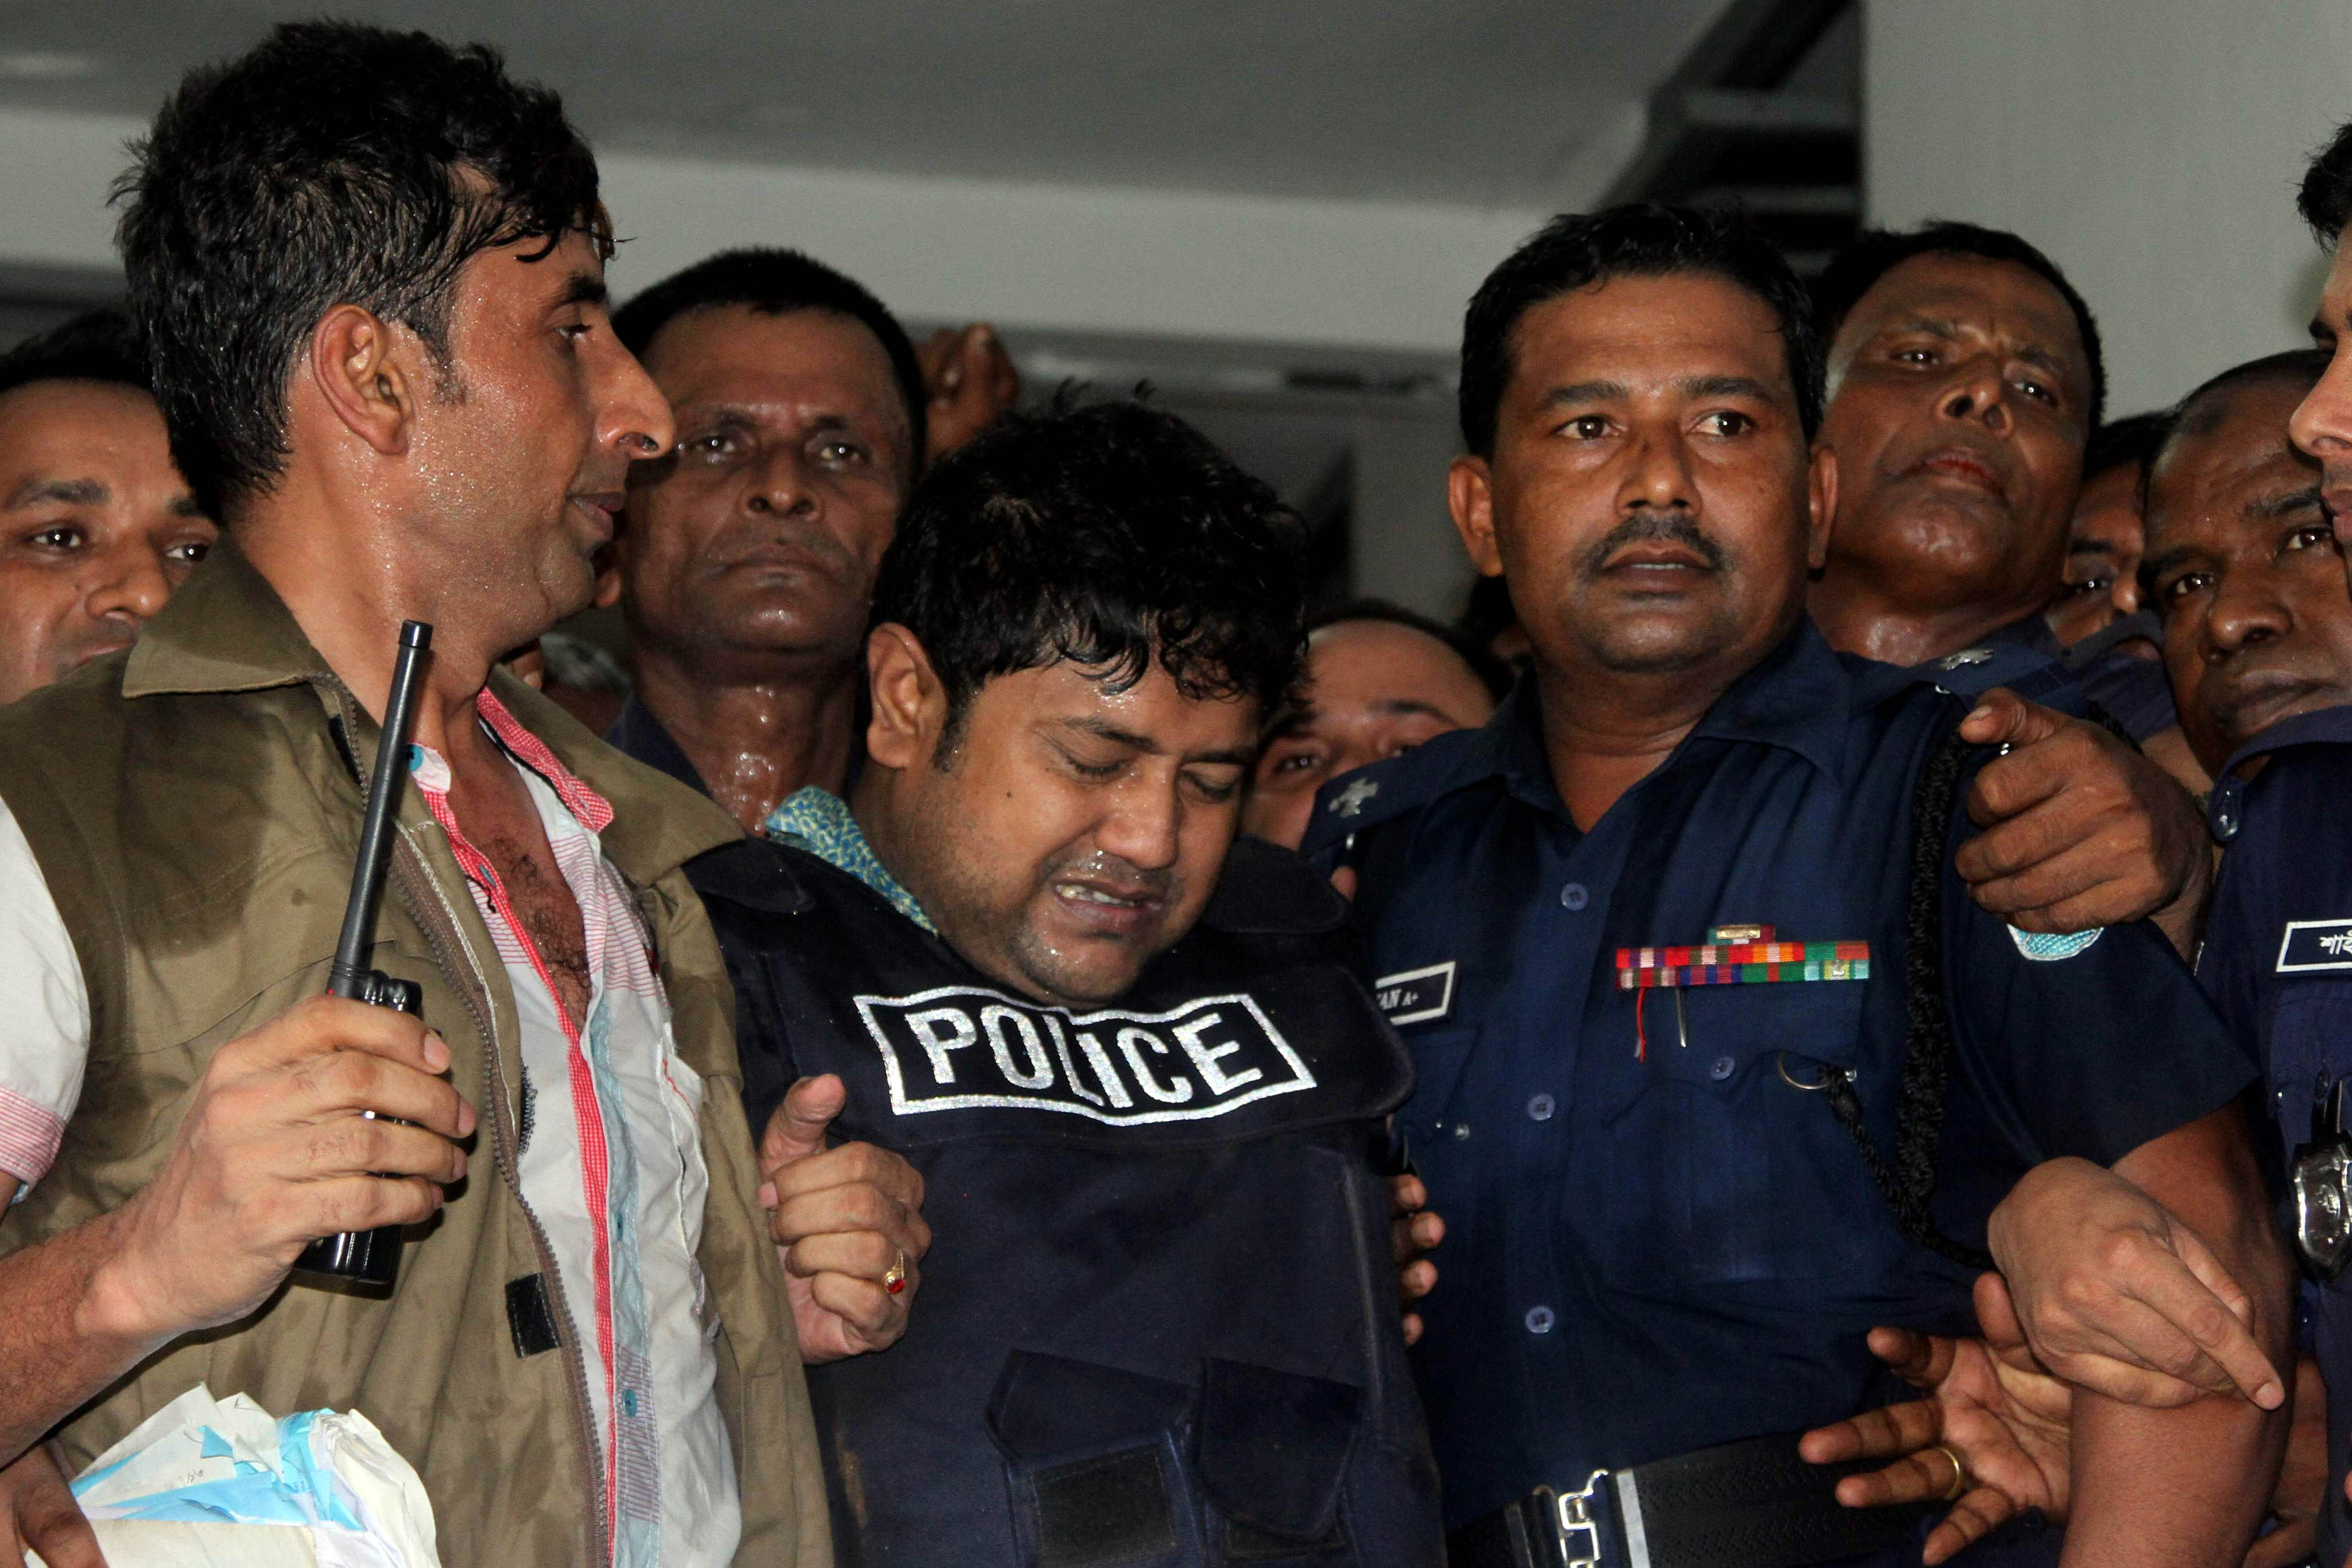 Bangladeshi property tycoon Sohel Rana (C), seen wearing police-issue body armor, is escorted for his appearance in court in Dhaka on April 29, 2013.